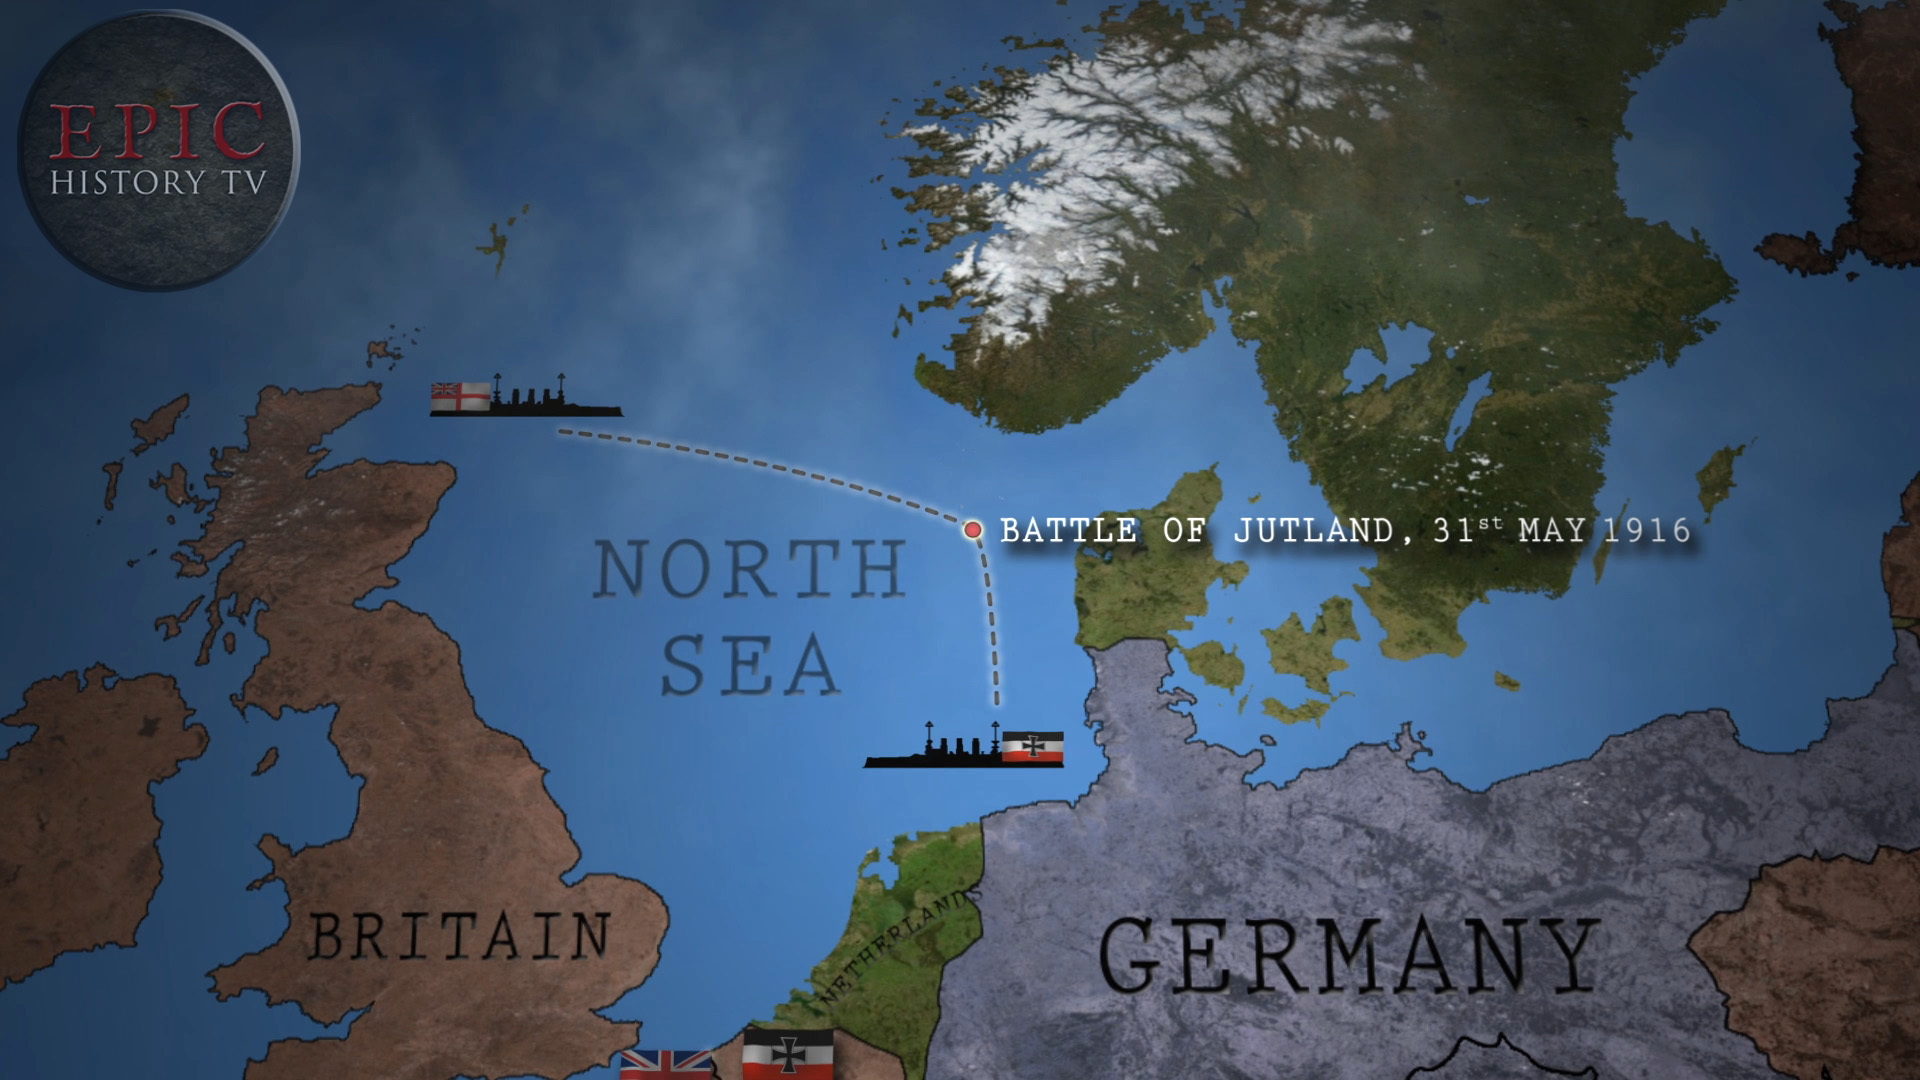 The Battle of Jutland, named after the Jutland peninsula in Denmark, was the only large-scale naval battle of World War One. The German fleet inflicted heavier losses on the British, but their withdrawal from the engagement,and failure to inflict a decisive defeat, meant that Britain's naval blockade against Germany continued. The German fleet did not put to sea to challenge the British again.  WATCH THE VIDEO